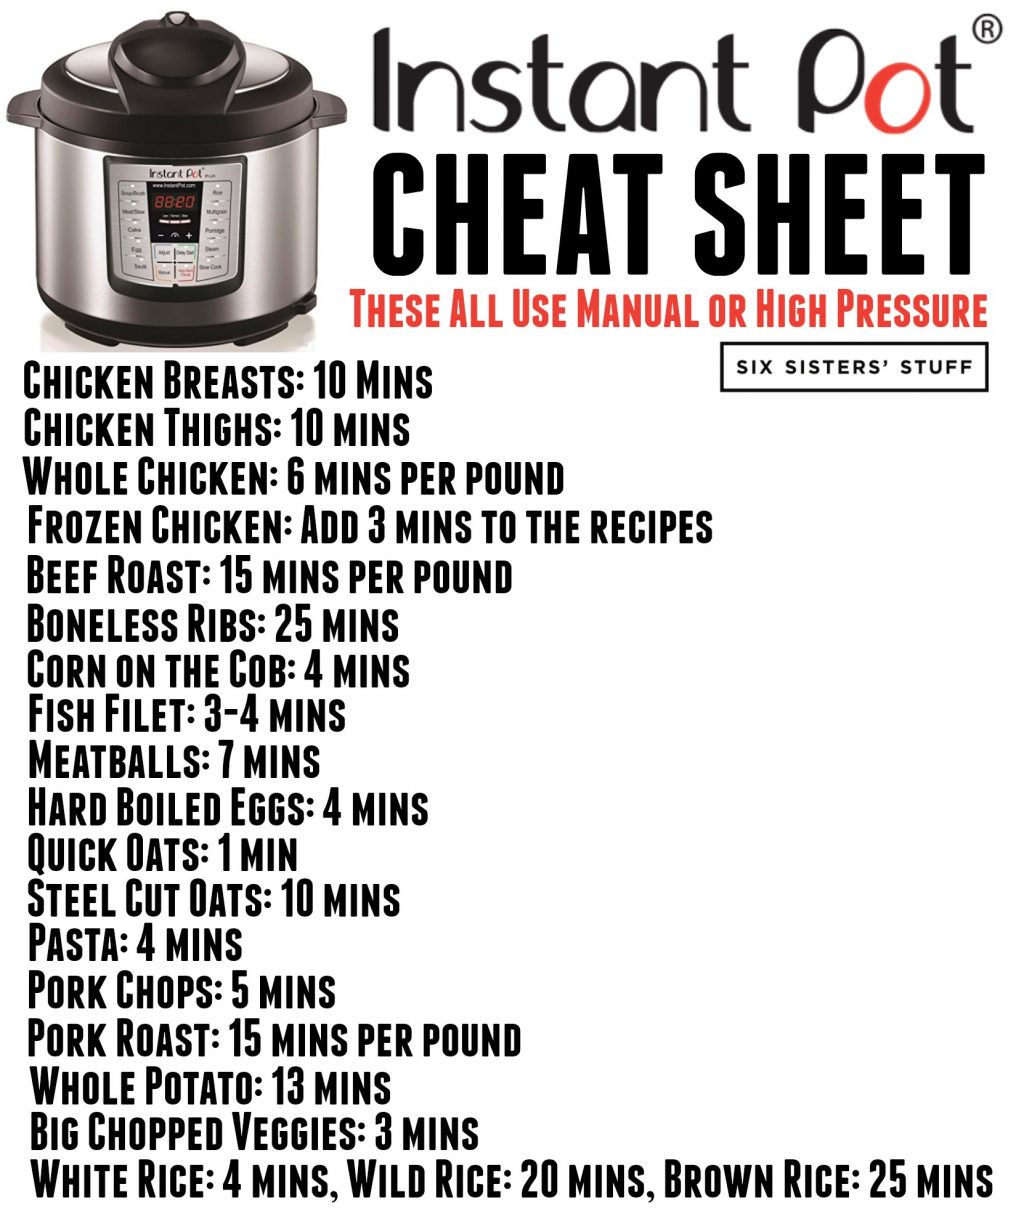 Instant-Pot-Cheat-Sheet-Sixsistersstuff-1024x1232.jpg